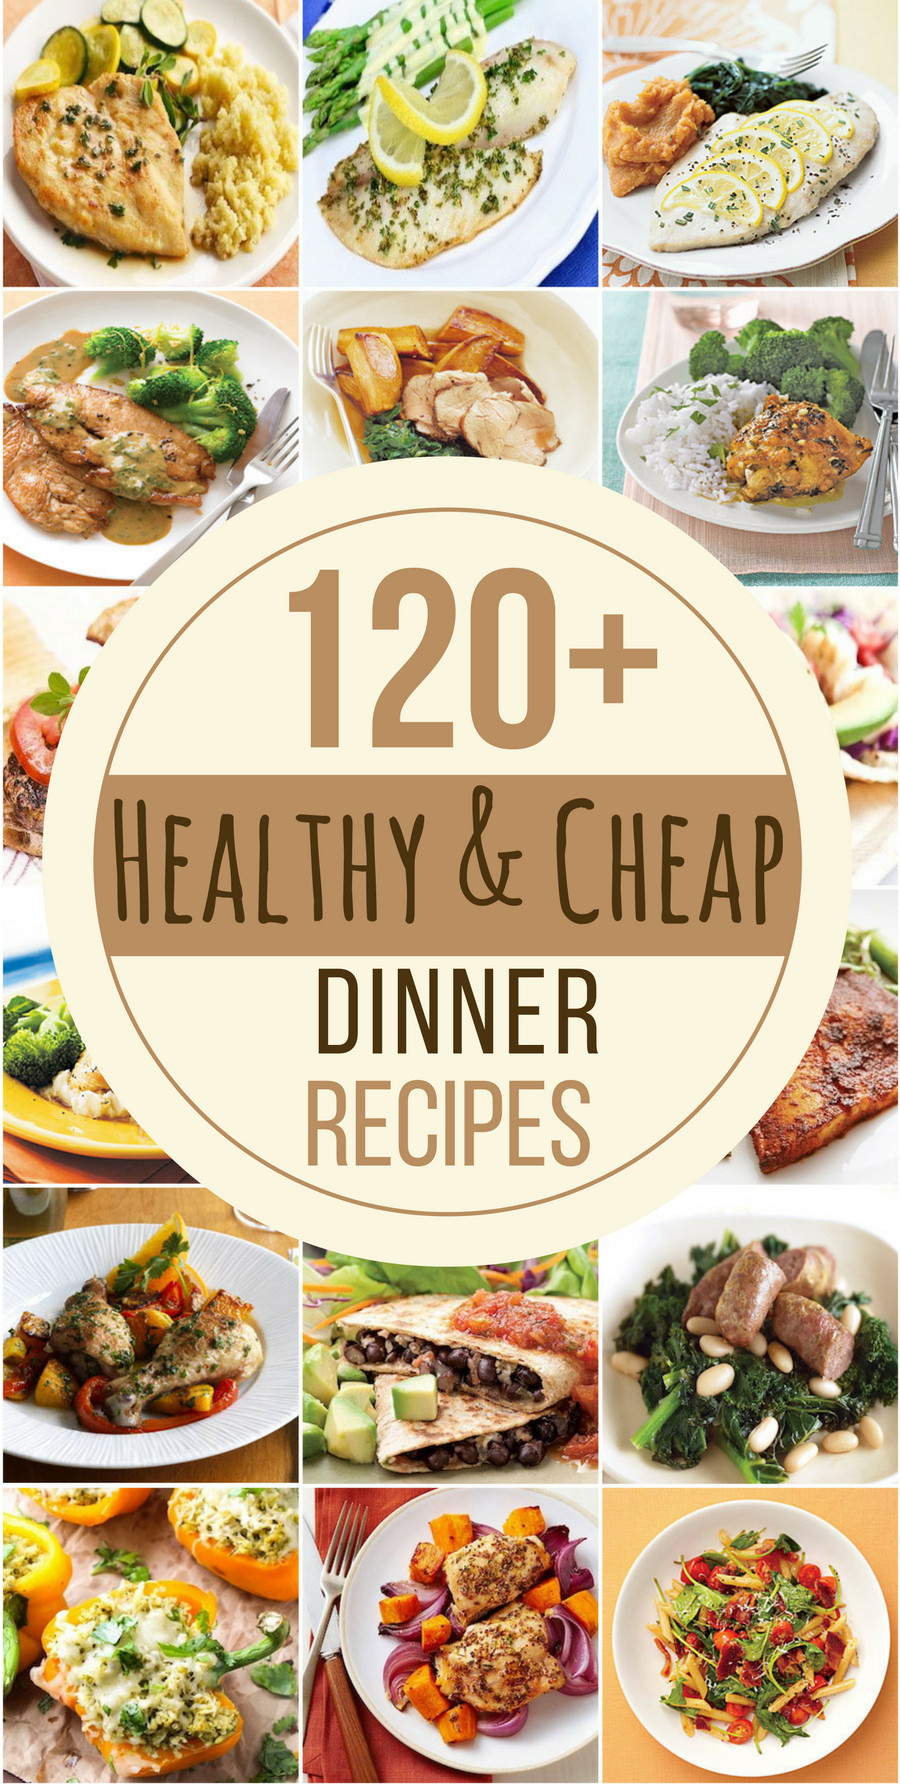 Healthy Cheap Dinner Ideas  120 Healthy and Cheap Dinner Recipes Prudent Penny Pincher